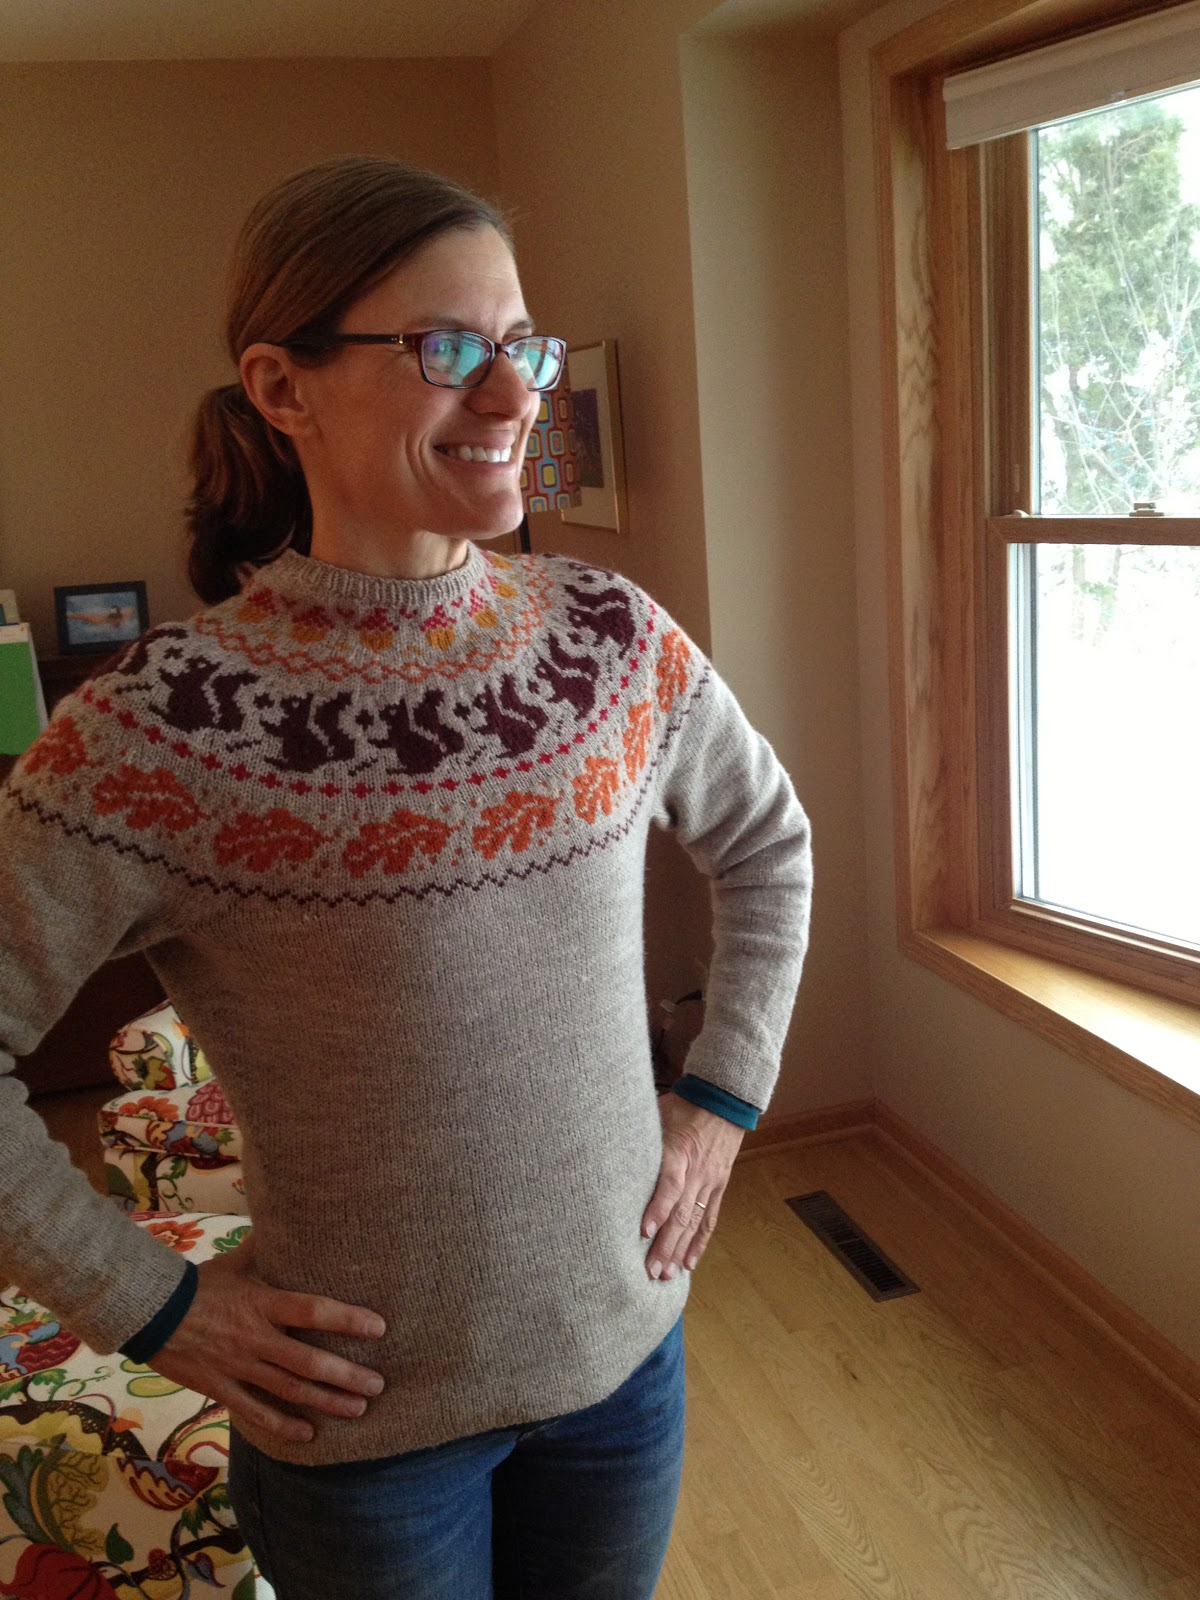 Susan b anderson craftsys custom yoke sweater class by amy detjen i highly recommend this class for any interested colorwork yoke sweater knitters out there bankloansurffo Images